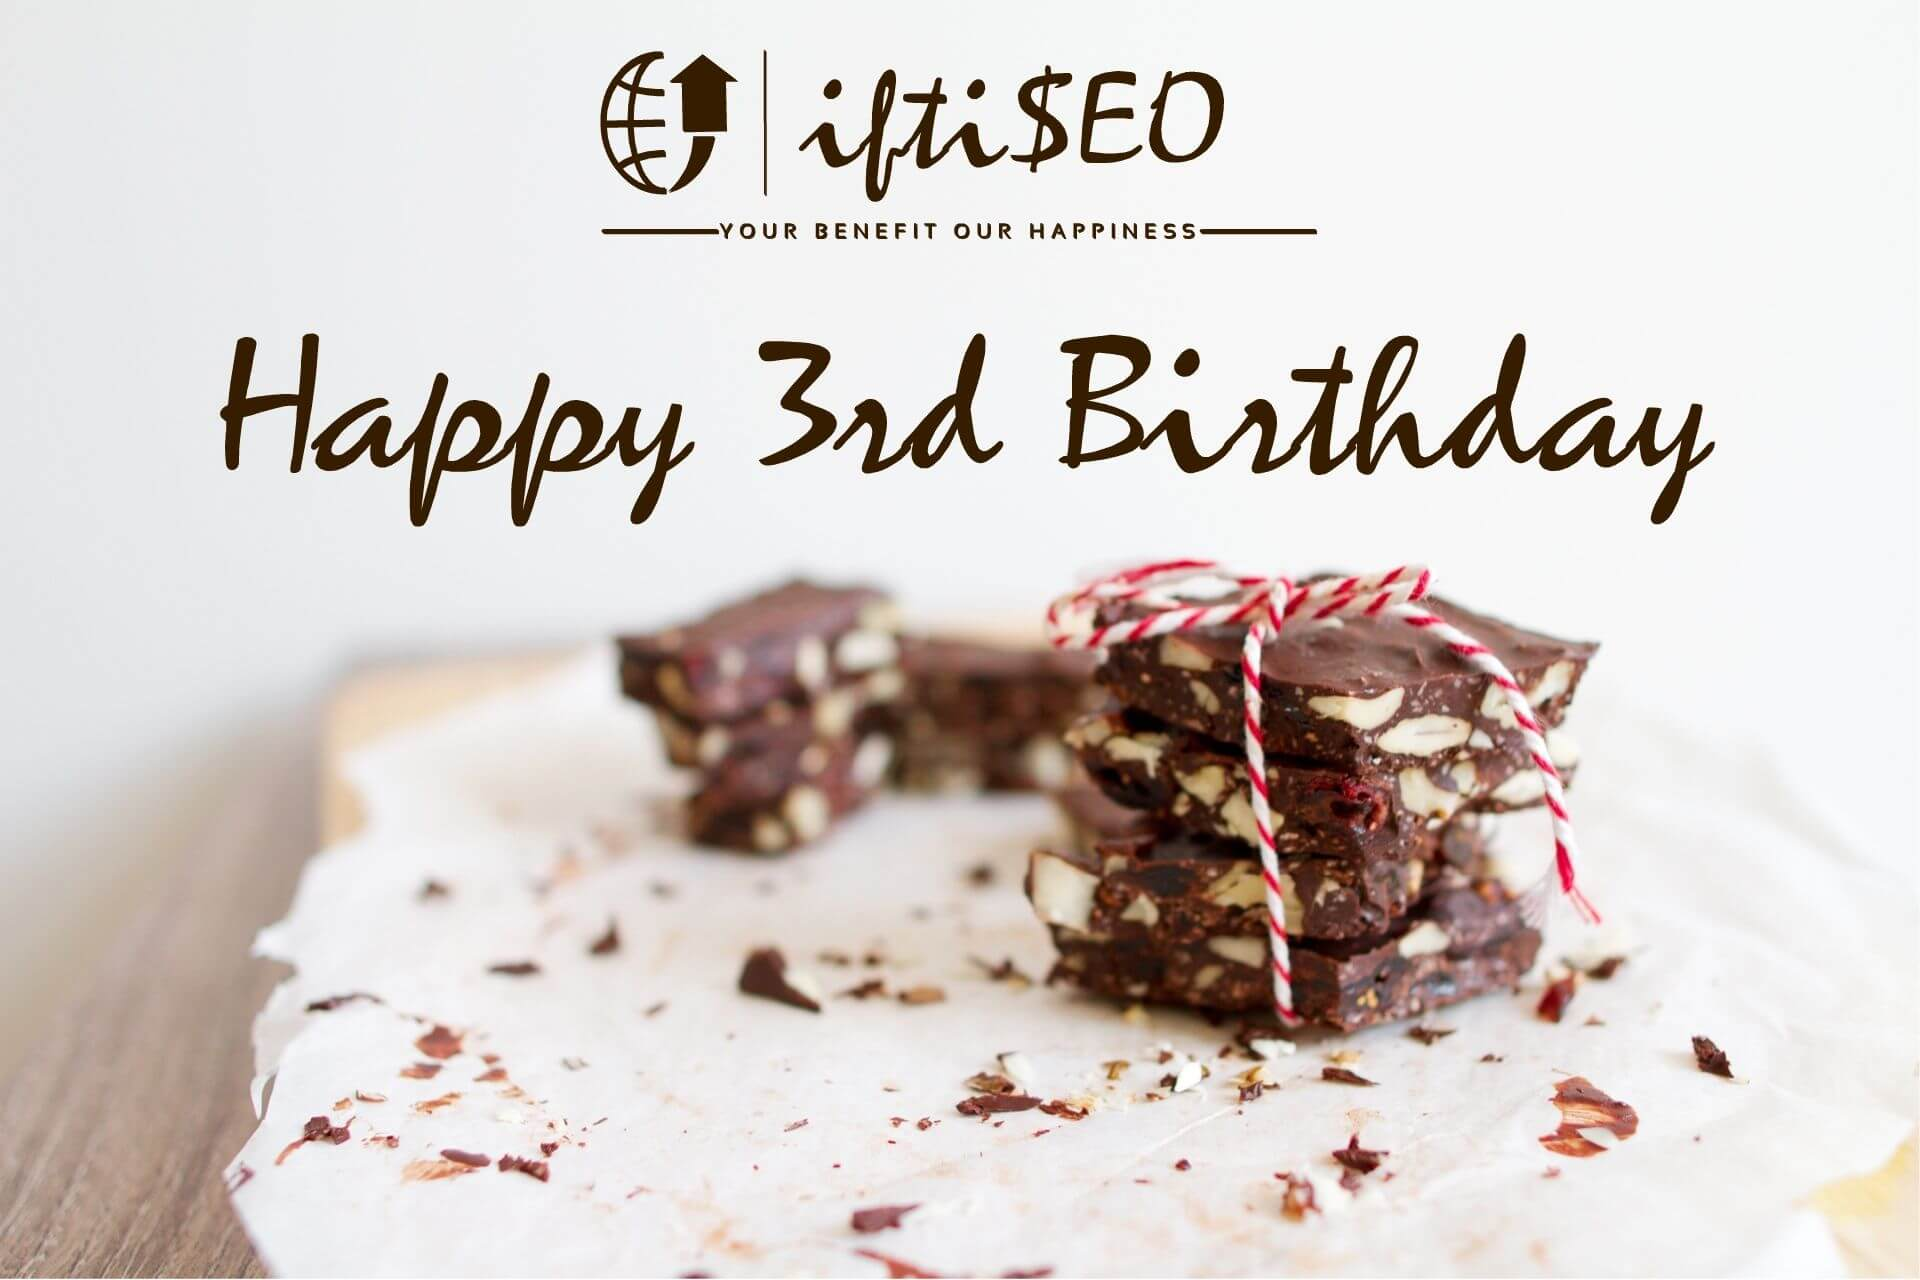 Happy-3rd-Birthday-iftiSEO